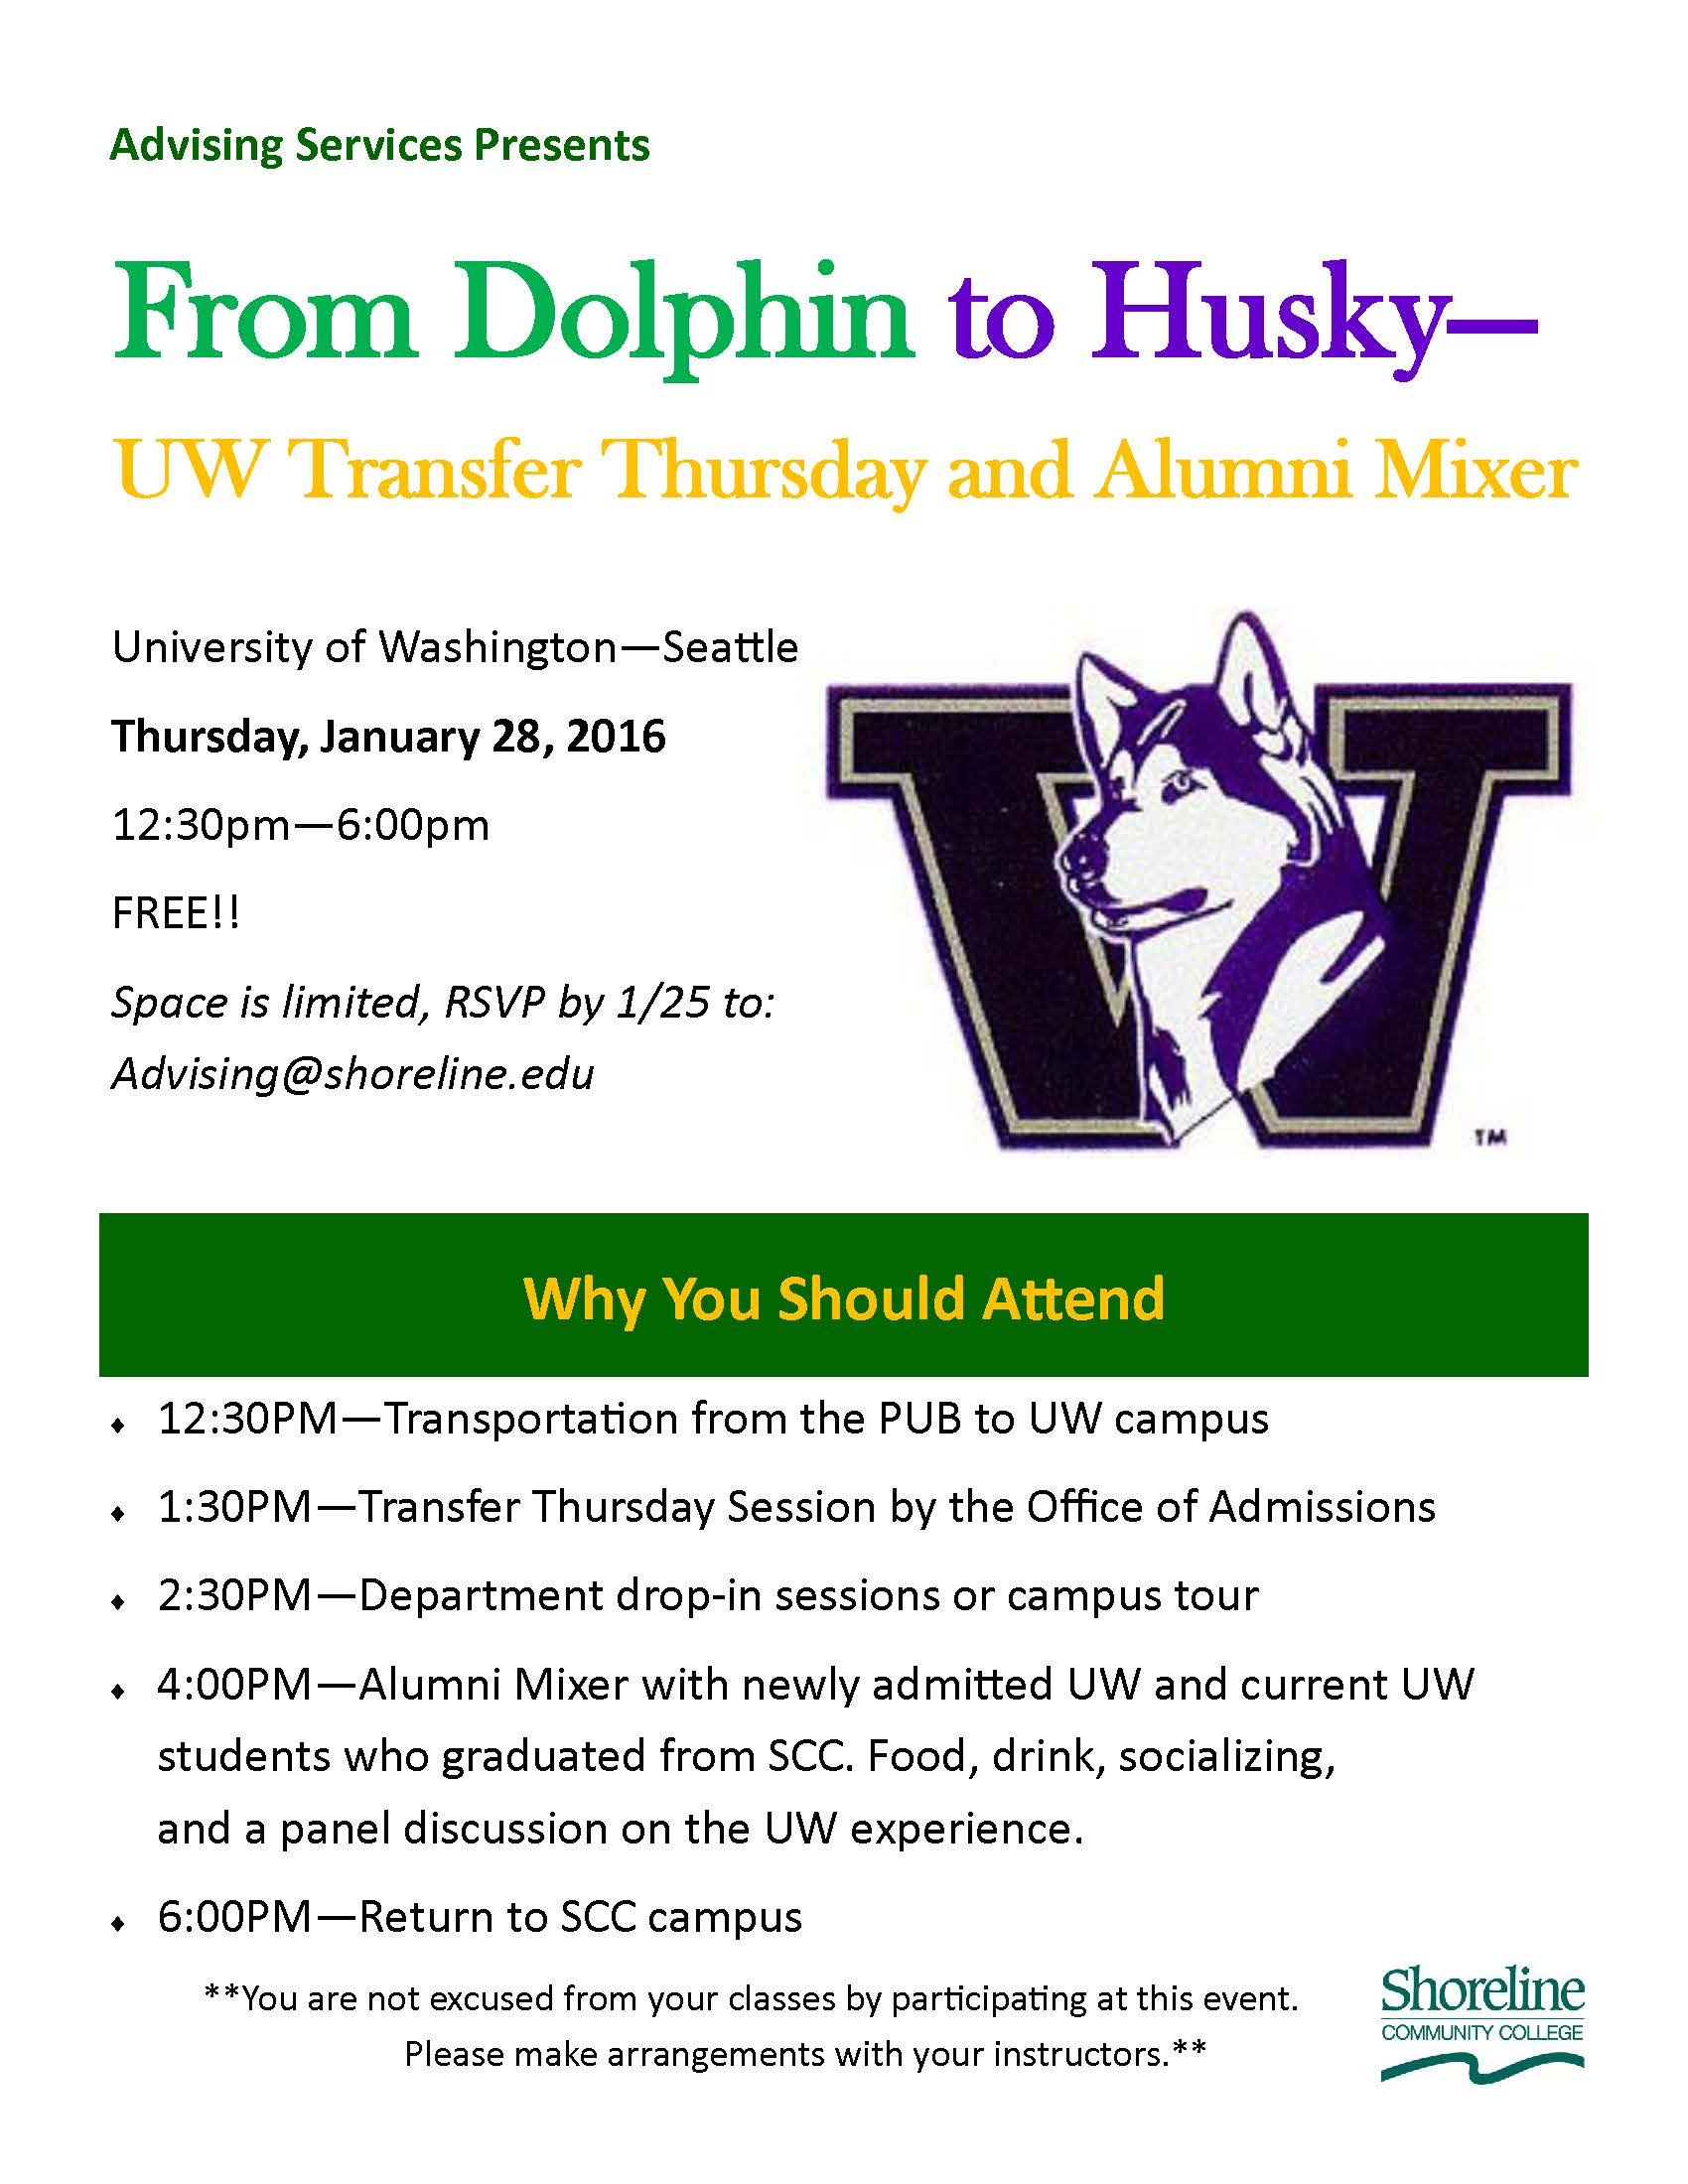 Sign up now for the UW Transfer Thursday and Alumni Mixer